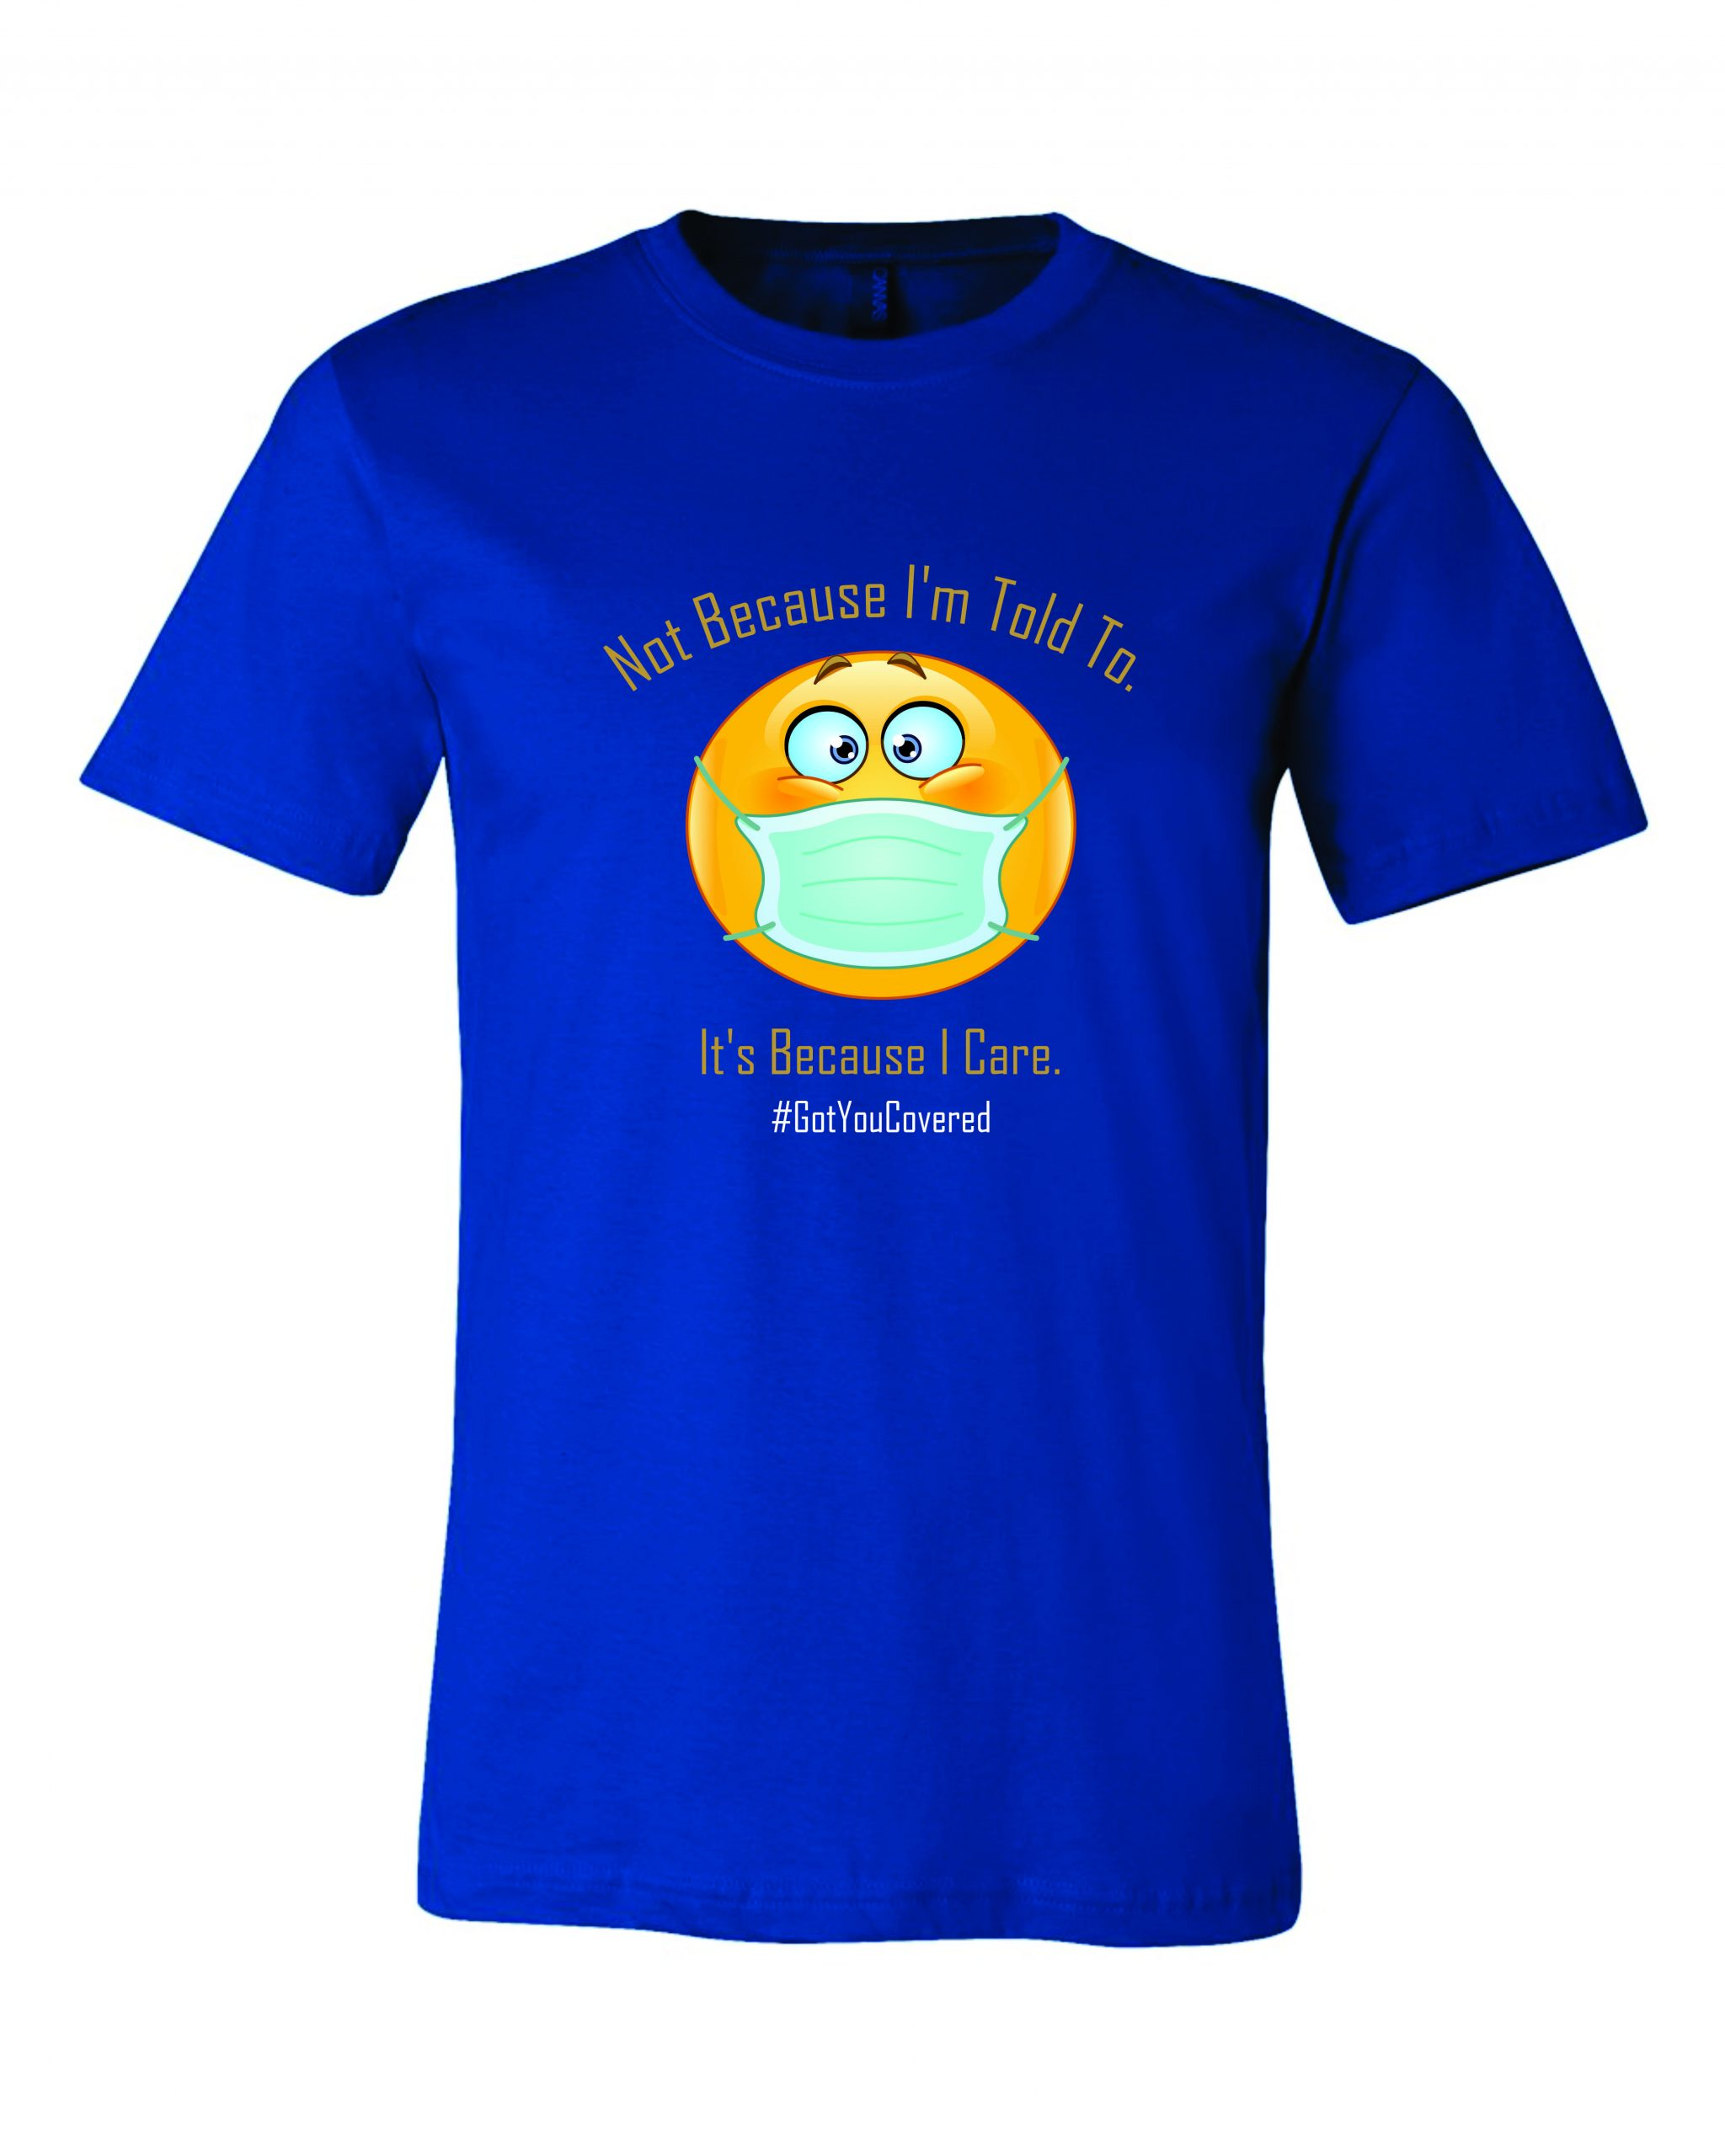 Rods-Sports-Got-You-Covered Tee-Rod